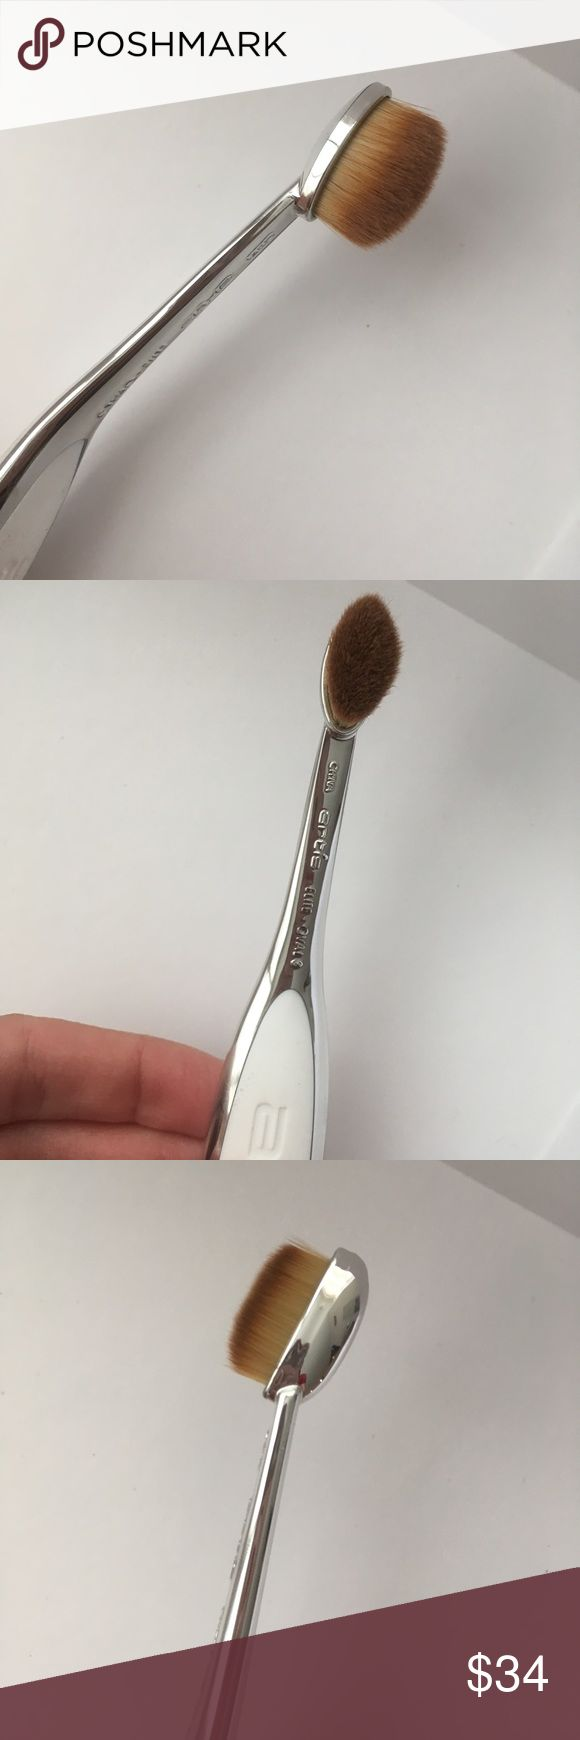 Artis Elite high quality makeup brush Oval 3 NEVER USED.  The Artis Elite Oval 3 assists the user in shading and blending the products applies to the outside and inside corners of the eyelid and smaller areas of the eyelid.  Great for concealer, foundation and contouring.  High quality professional make up brush! Artis Makeup Brushes & Tools